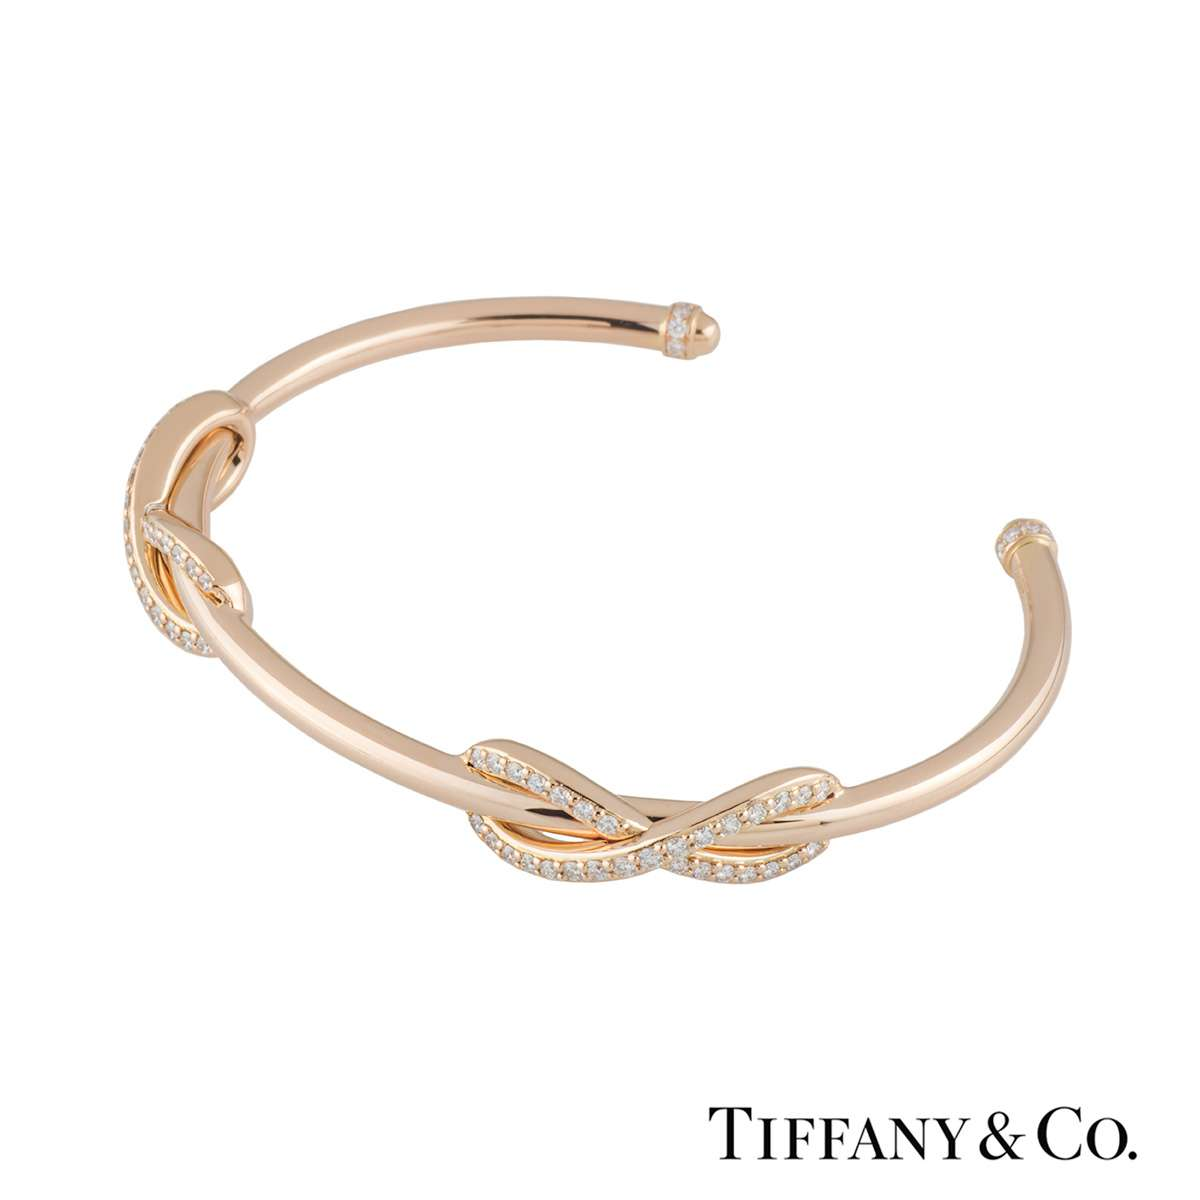 bc68694cf Rose Gold Diamond Double Infinity Cuff Bangle · Tiffany & Co. Rose Gold  Diamond Double Infinity Cuff Bangle ...